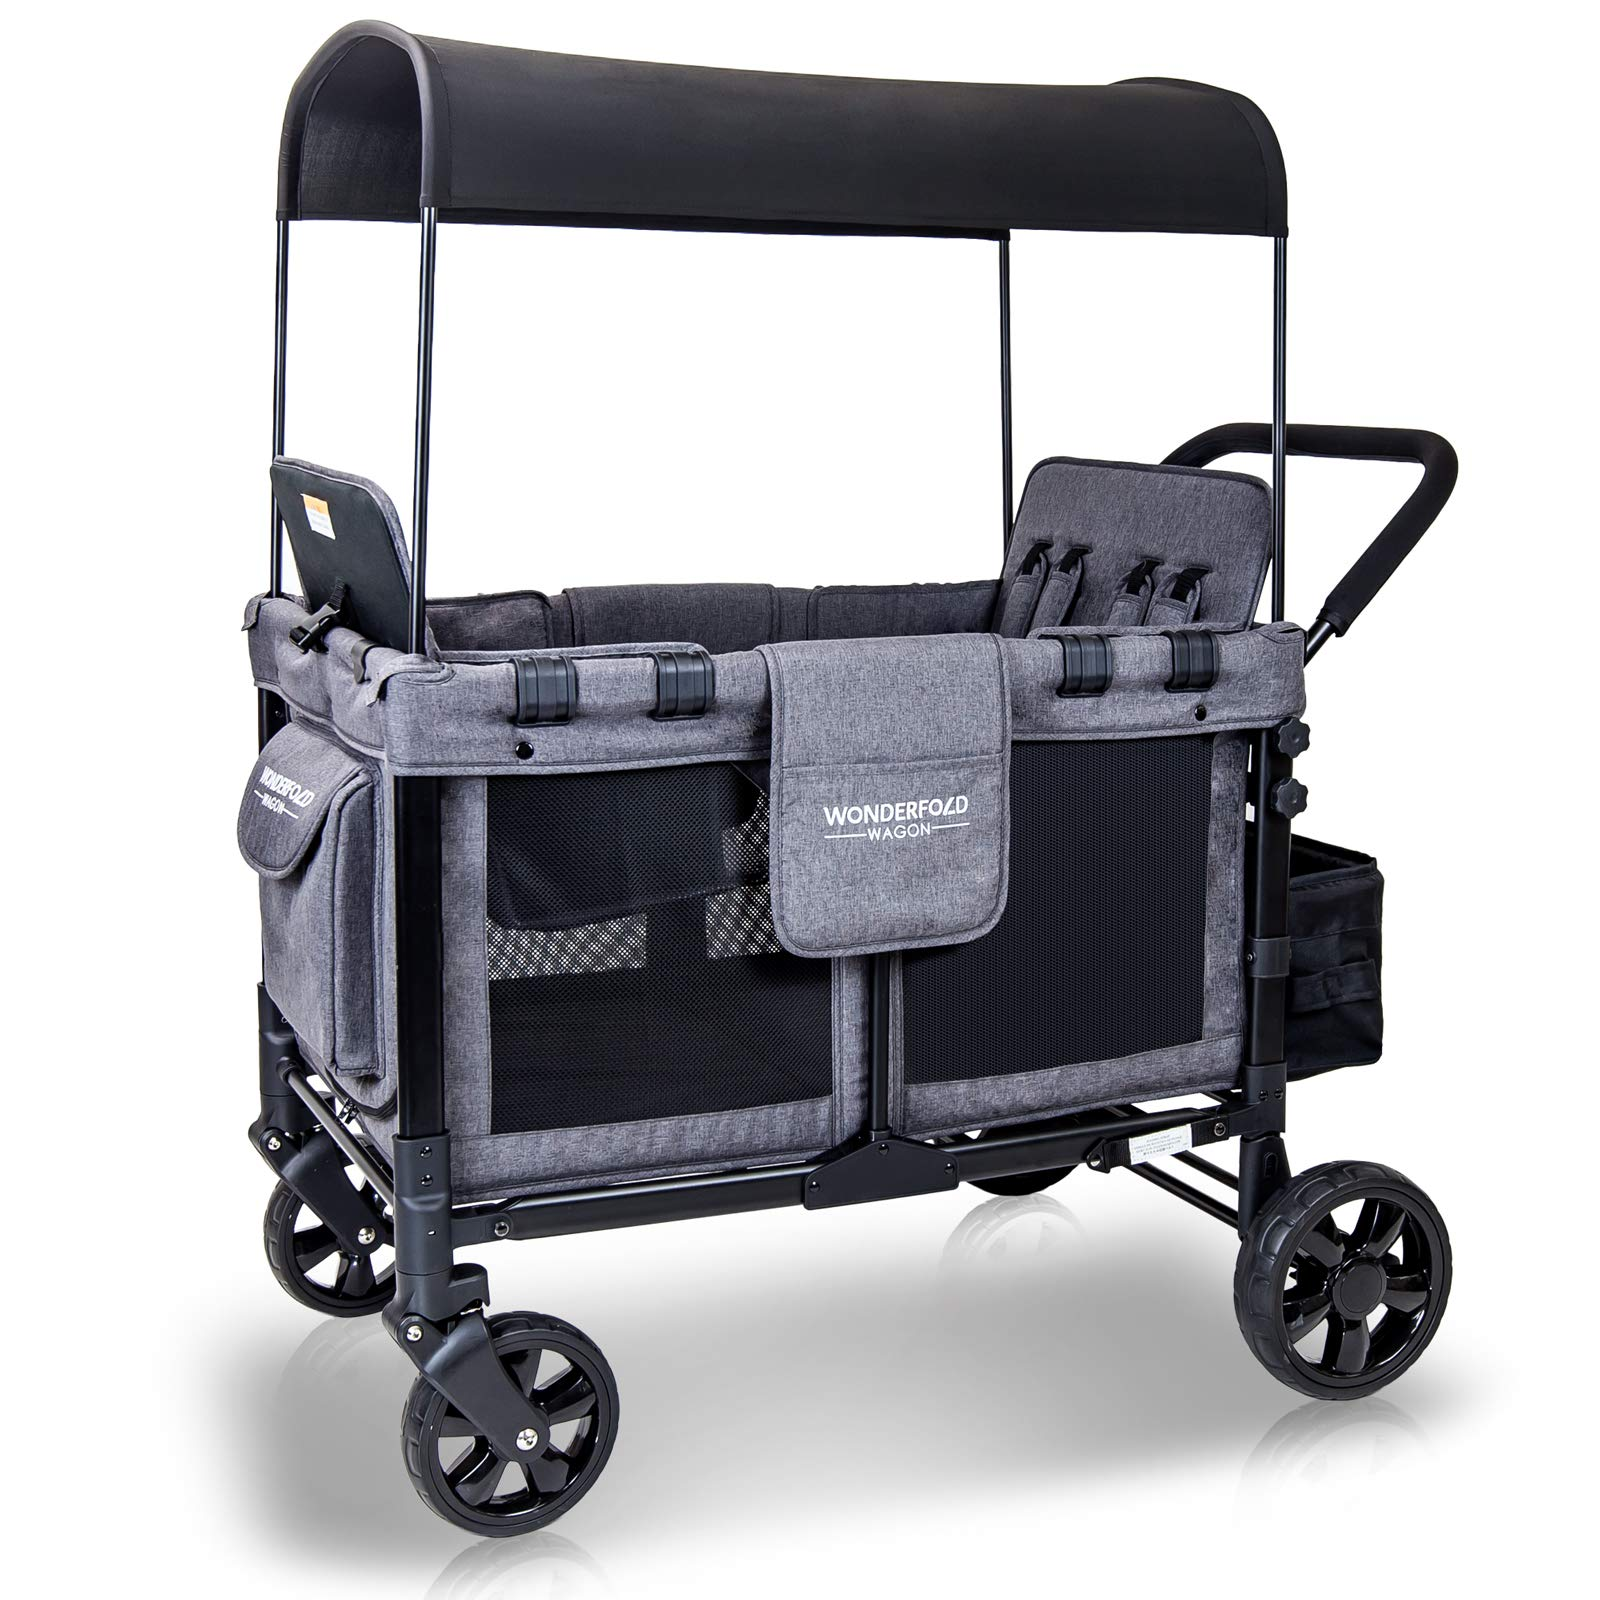 WonderFold Baby Multi-Function Four Passenger Wagon Folding Quad Stroller with Removable Reversible Canopy & Seats Up to 4 Toddlers (Gray/Black) by WonderFold